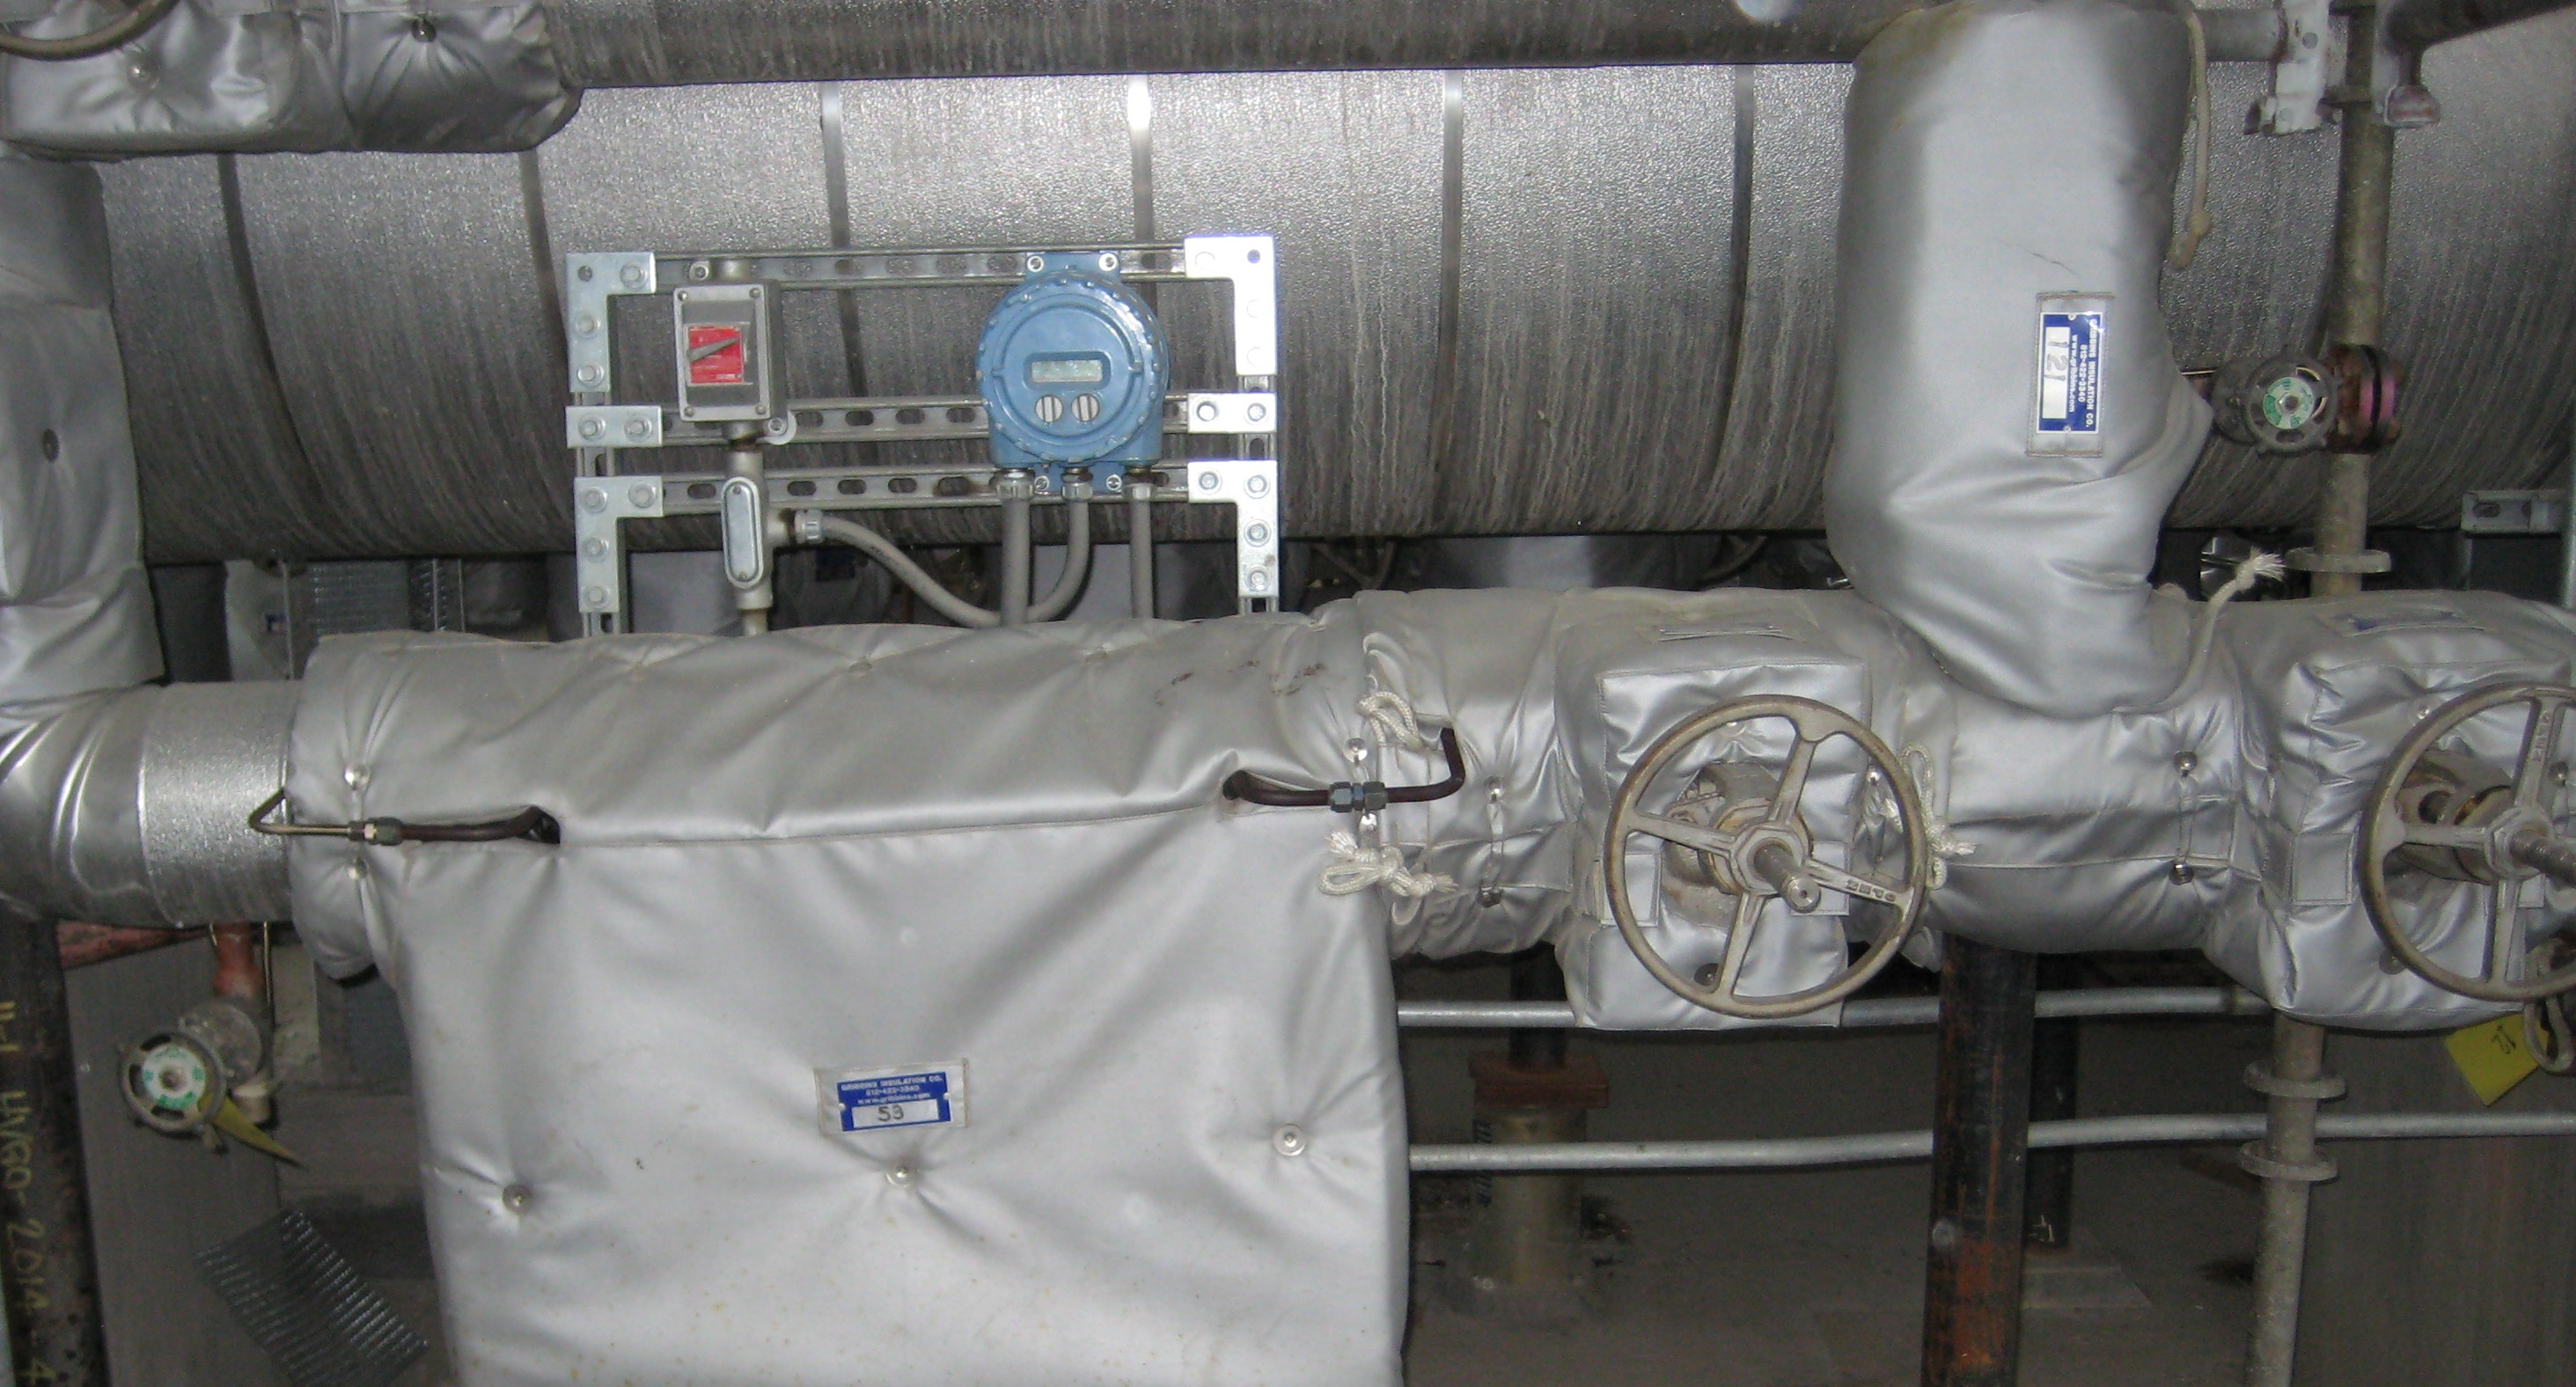 Flow Meter Insulation Covers Fit Tight Covers